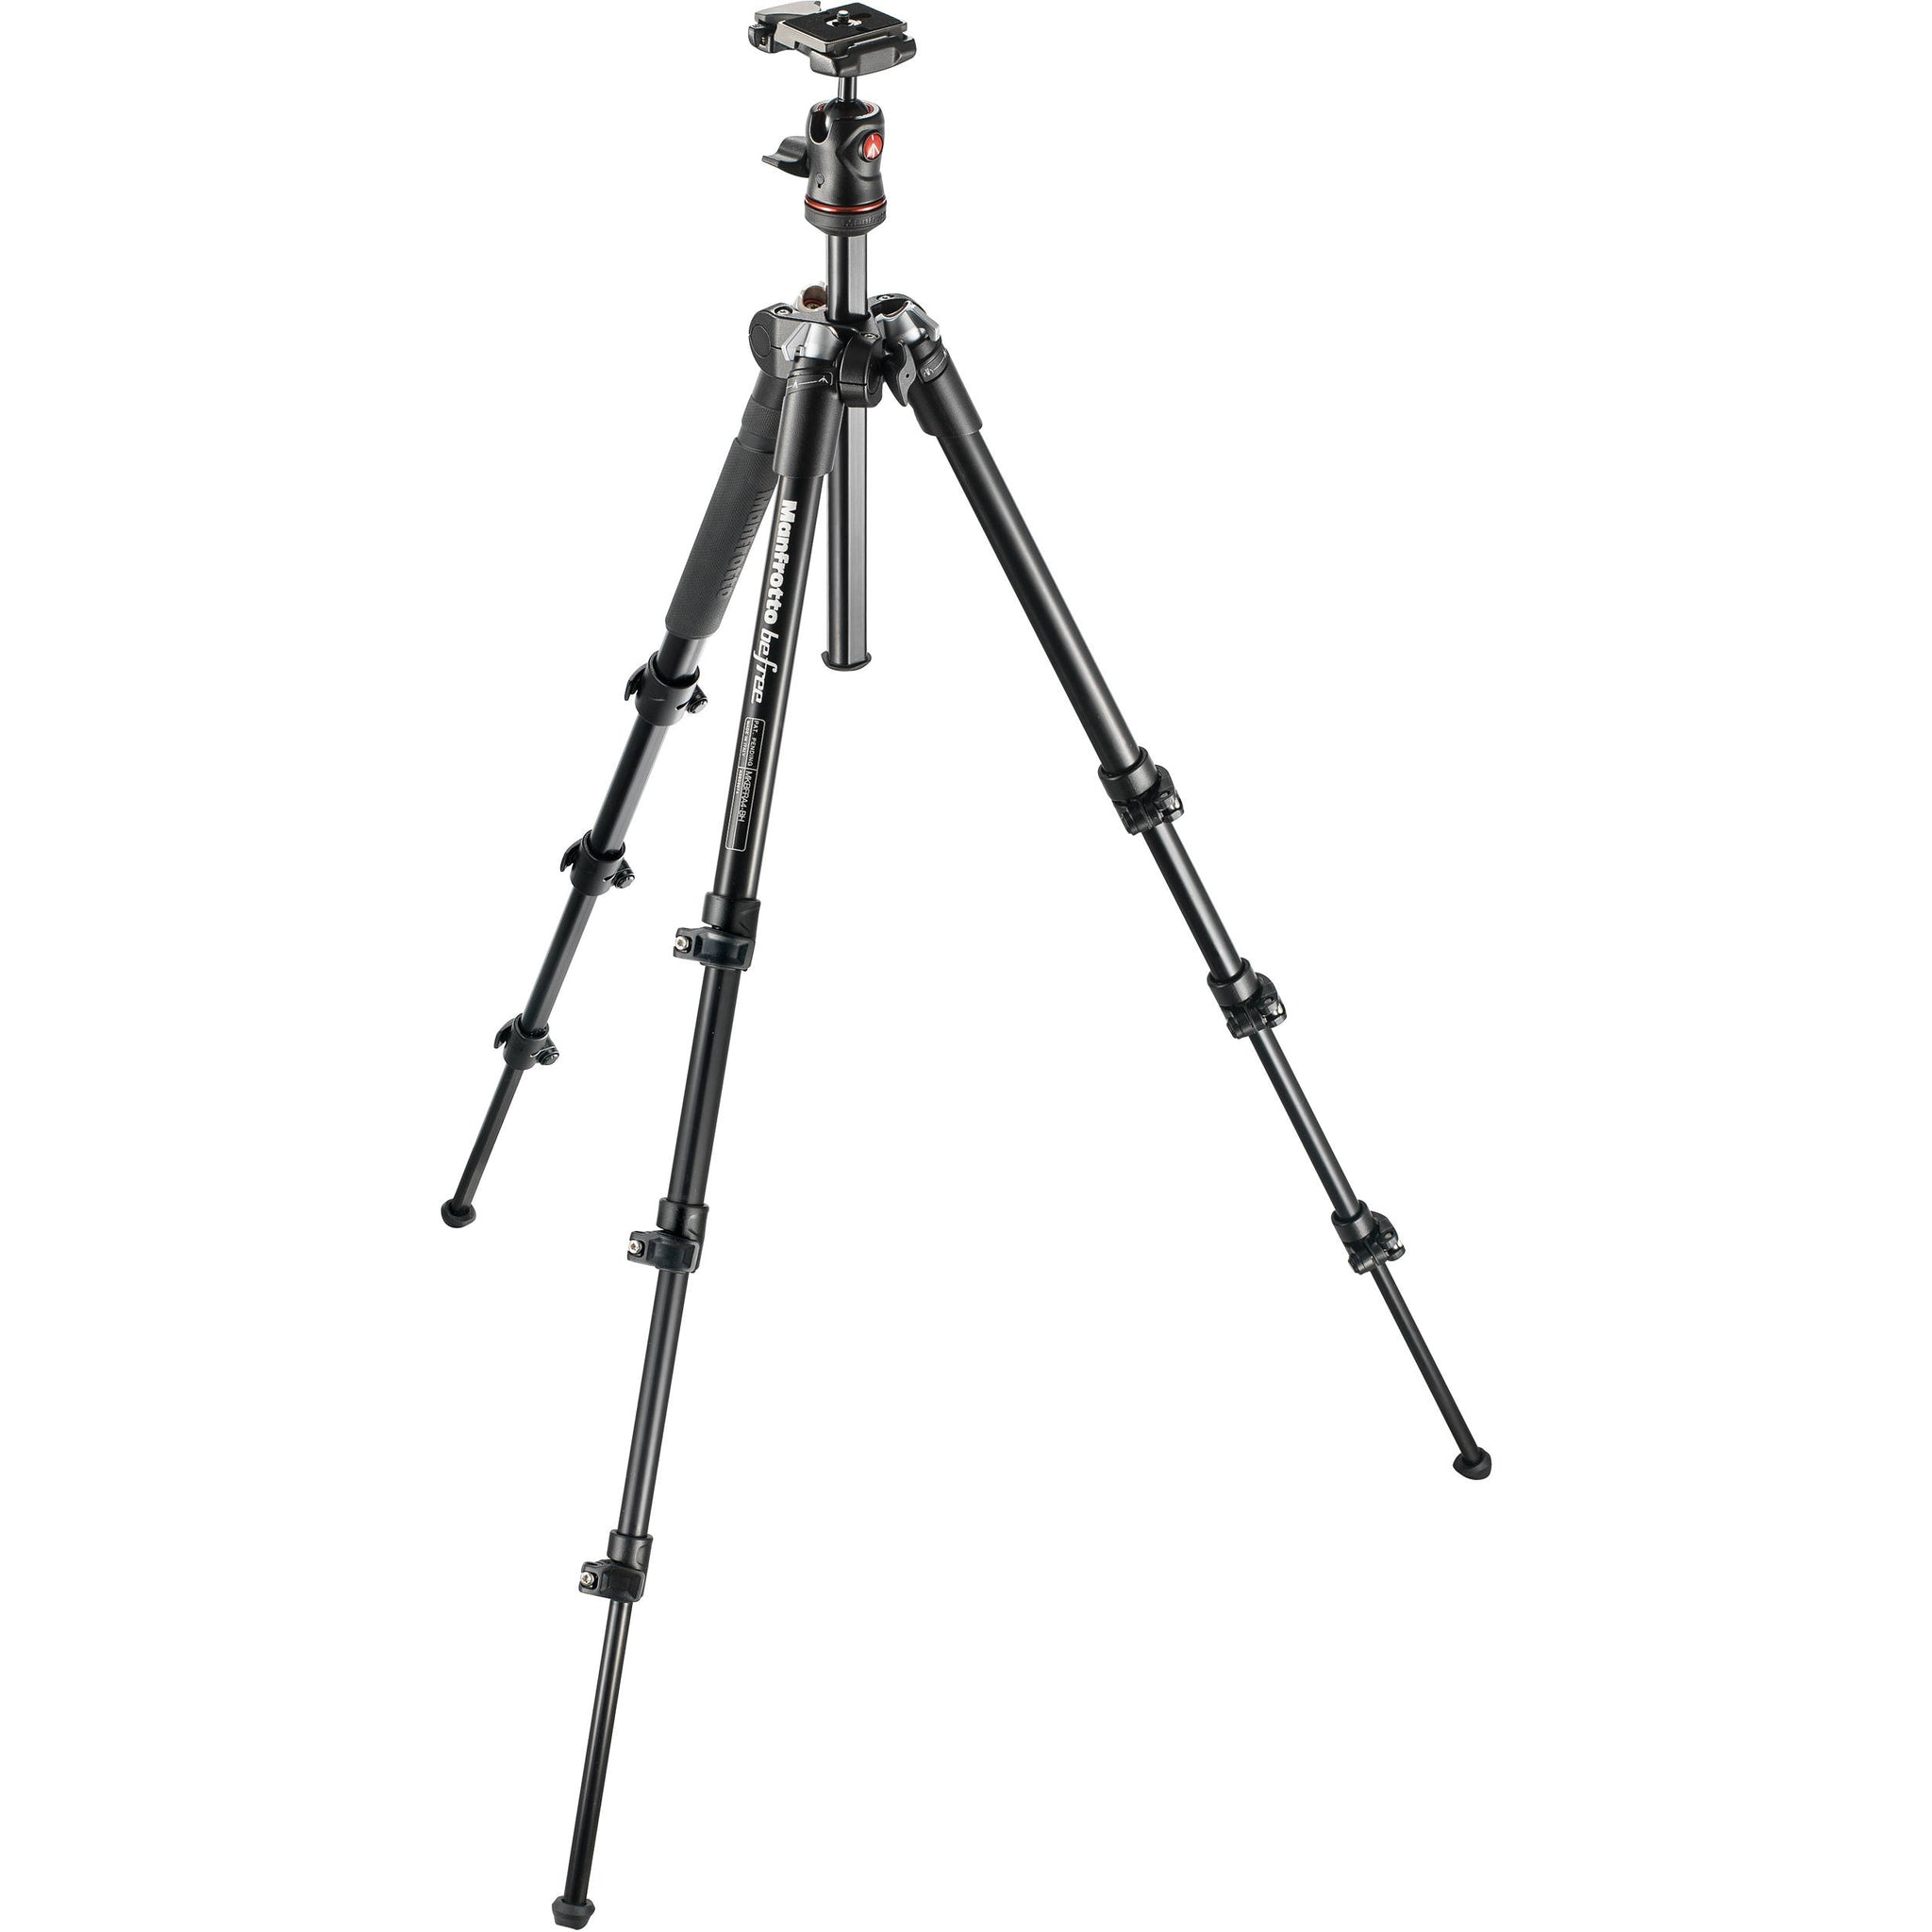 Manfrotto BeFree Compact Travel Aluminum Alloy Tripod